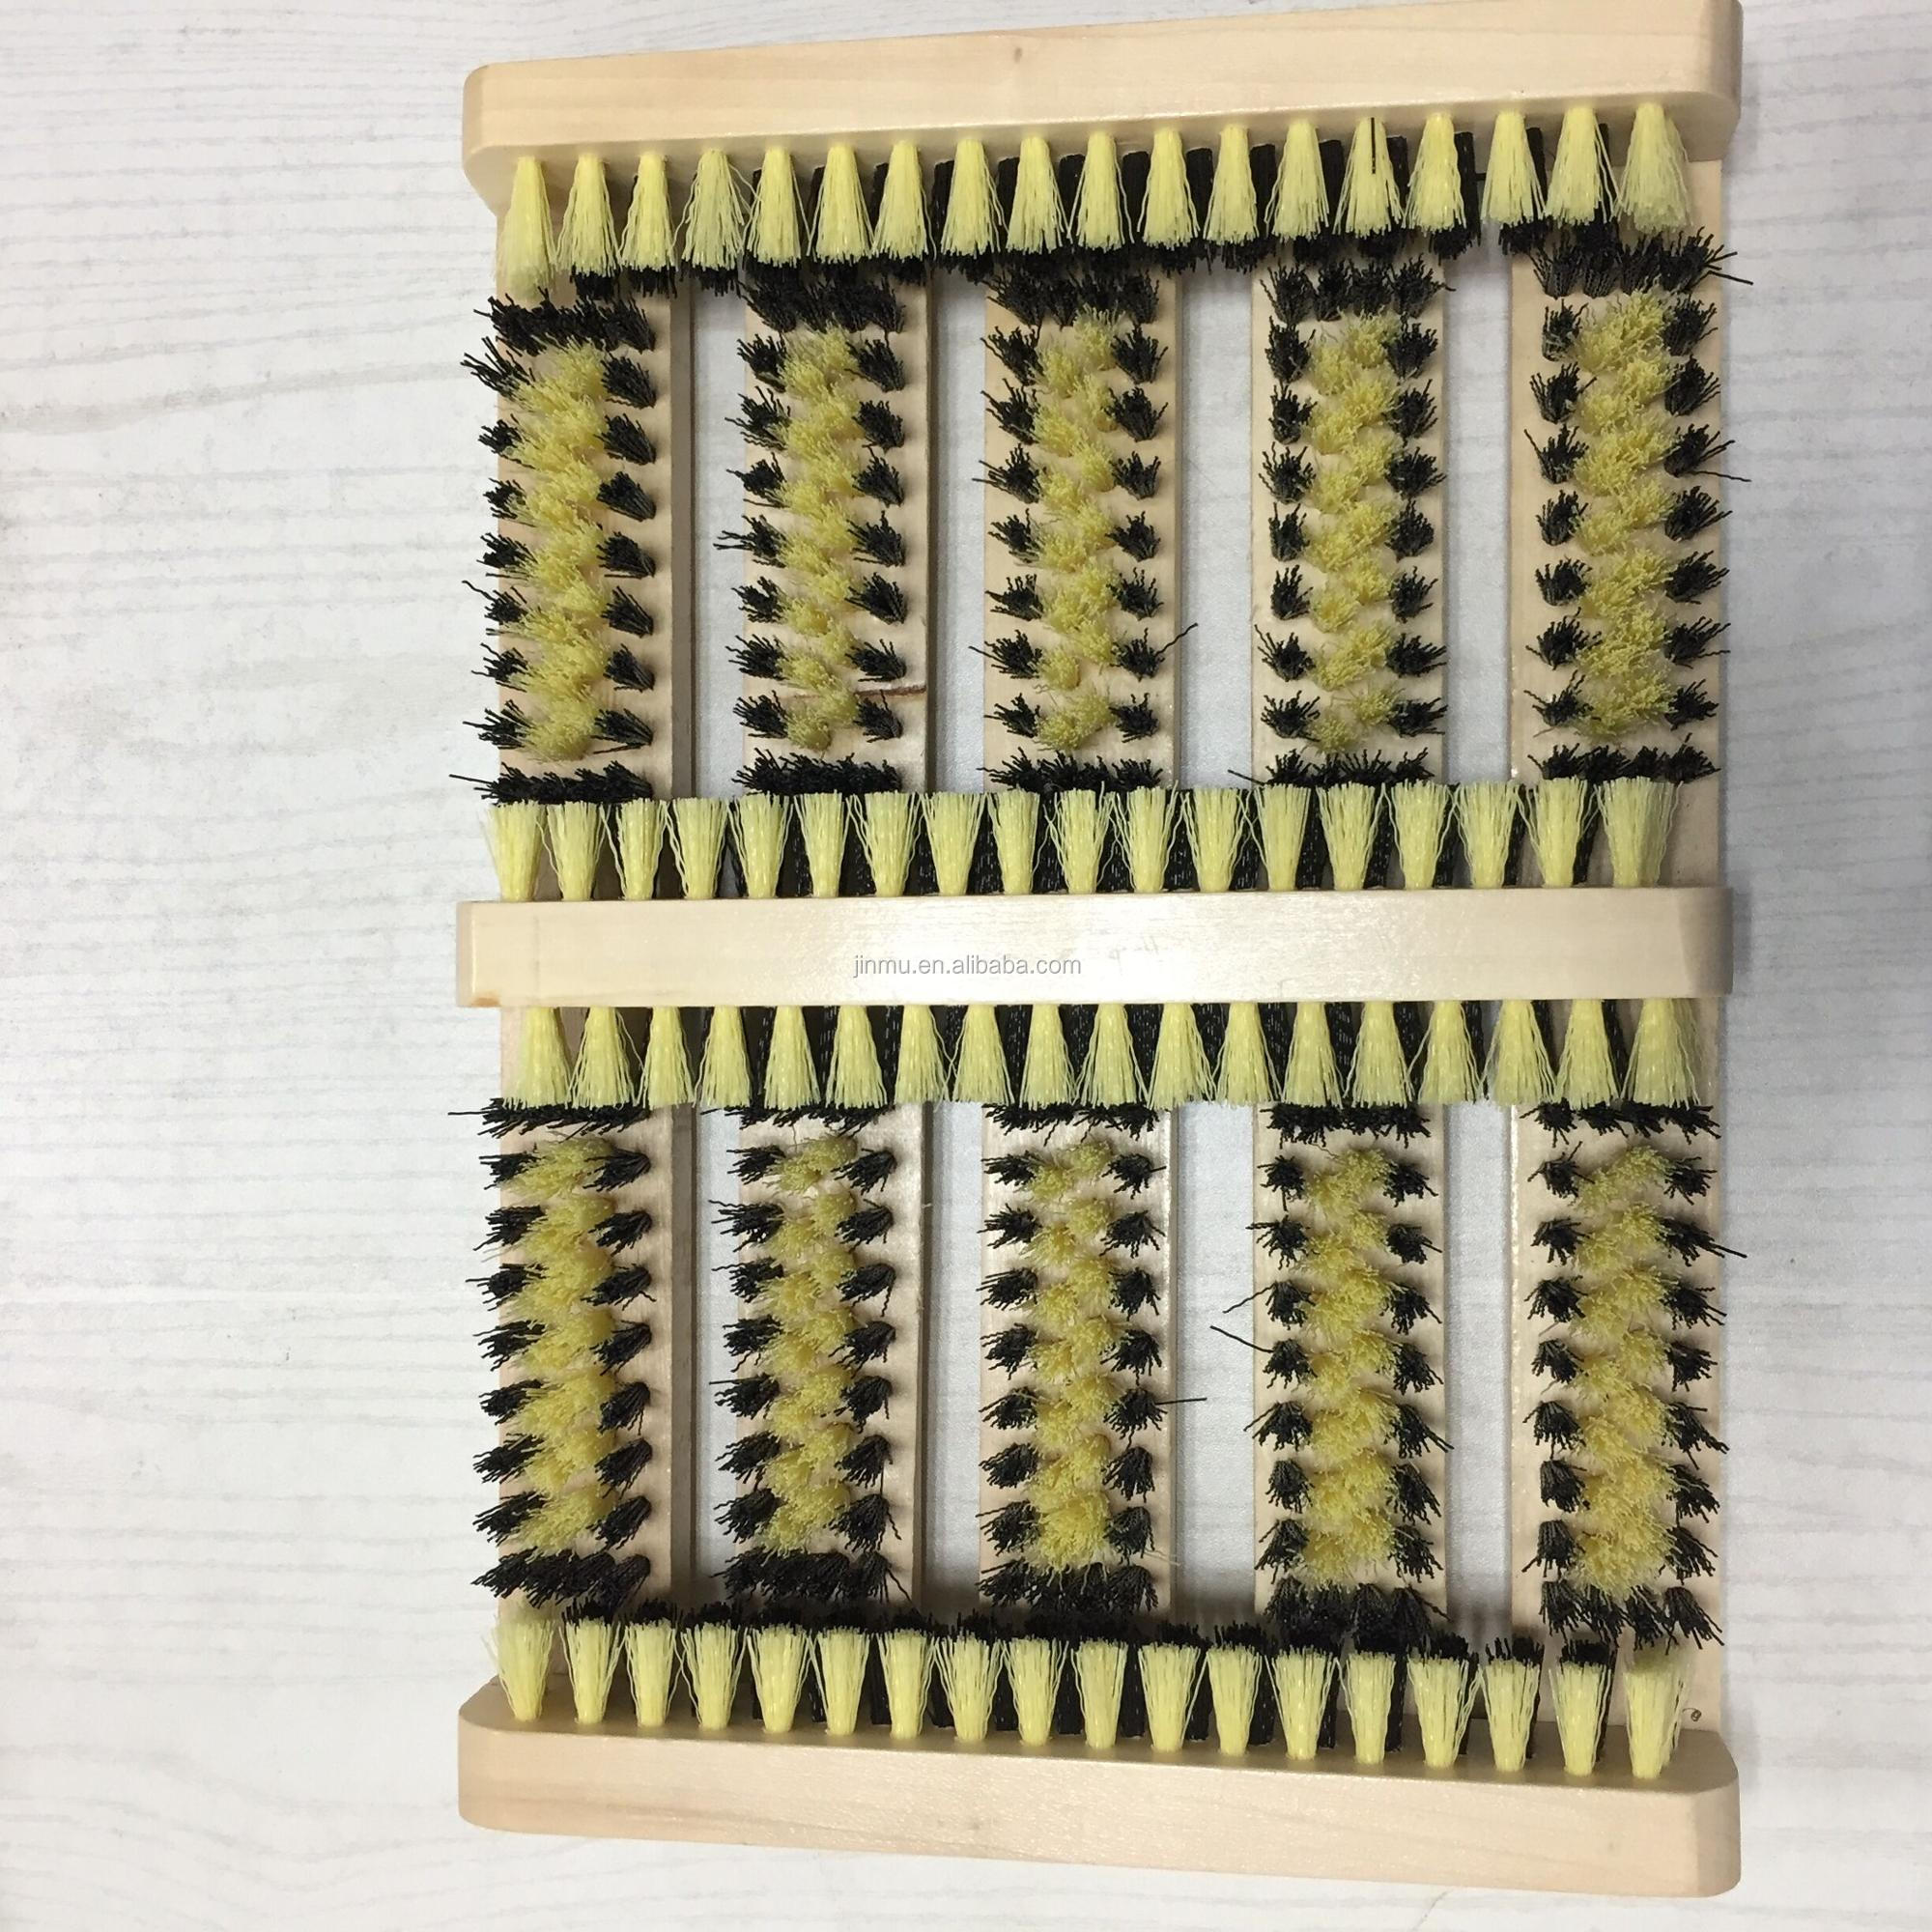 China wholesaler PP bristle material shoe boot scrubber brushes